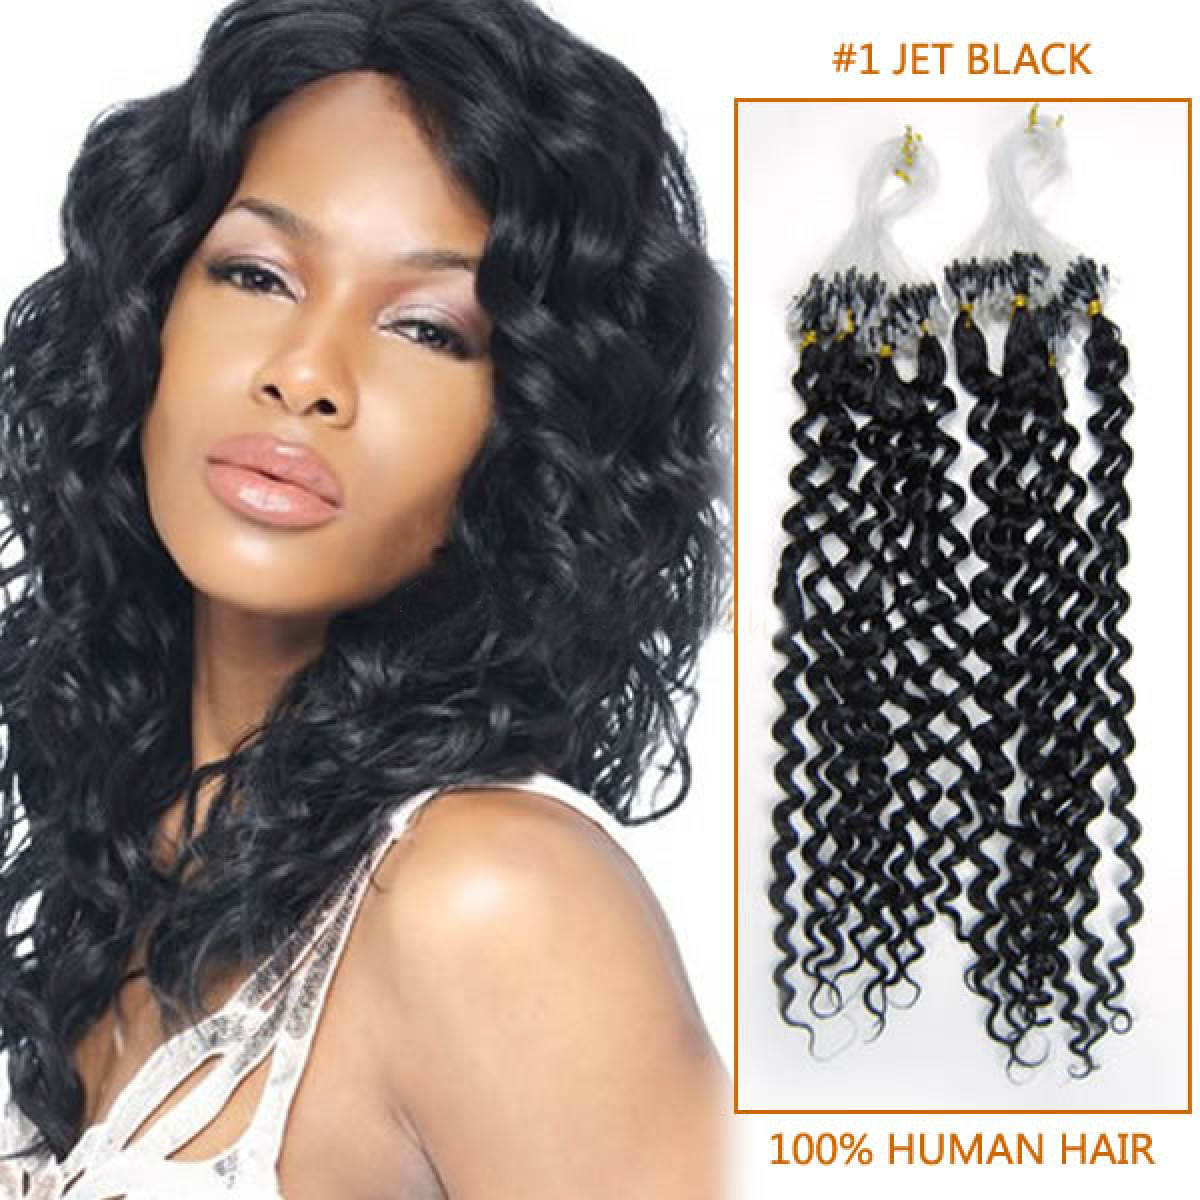 Fine 20 Inch #1 Jet Black Curly Micro Loop Hair Extensions 100 Strands